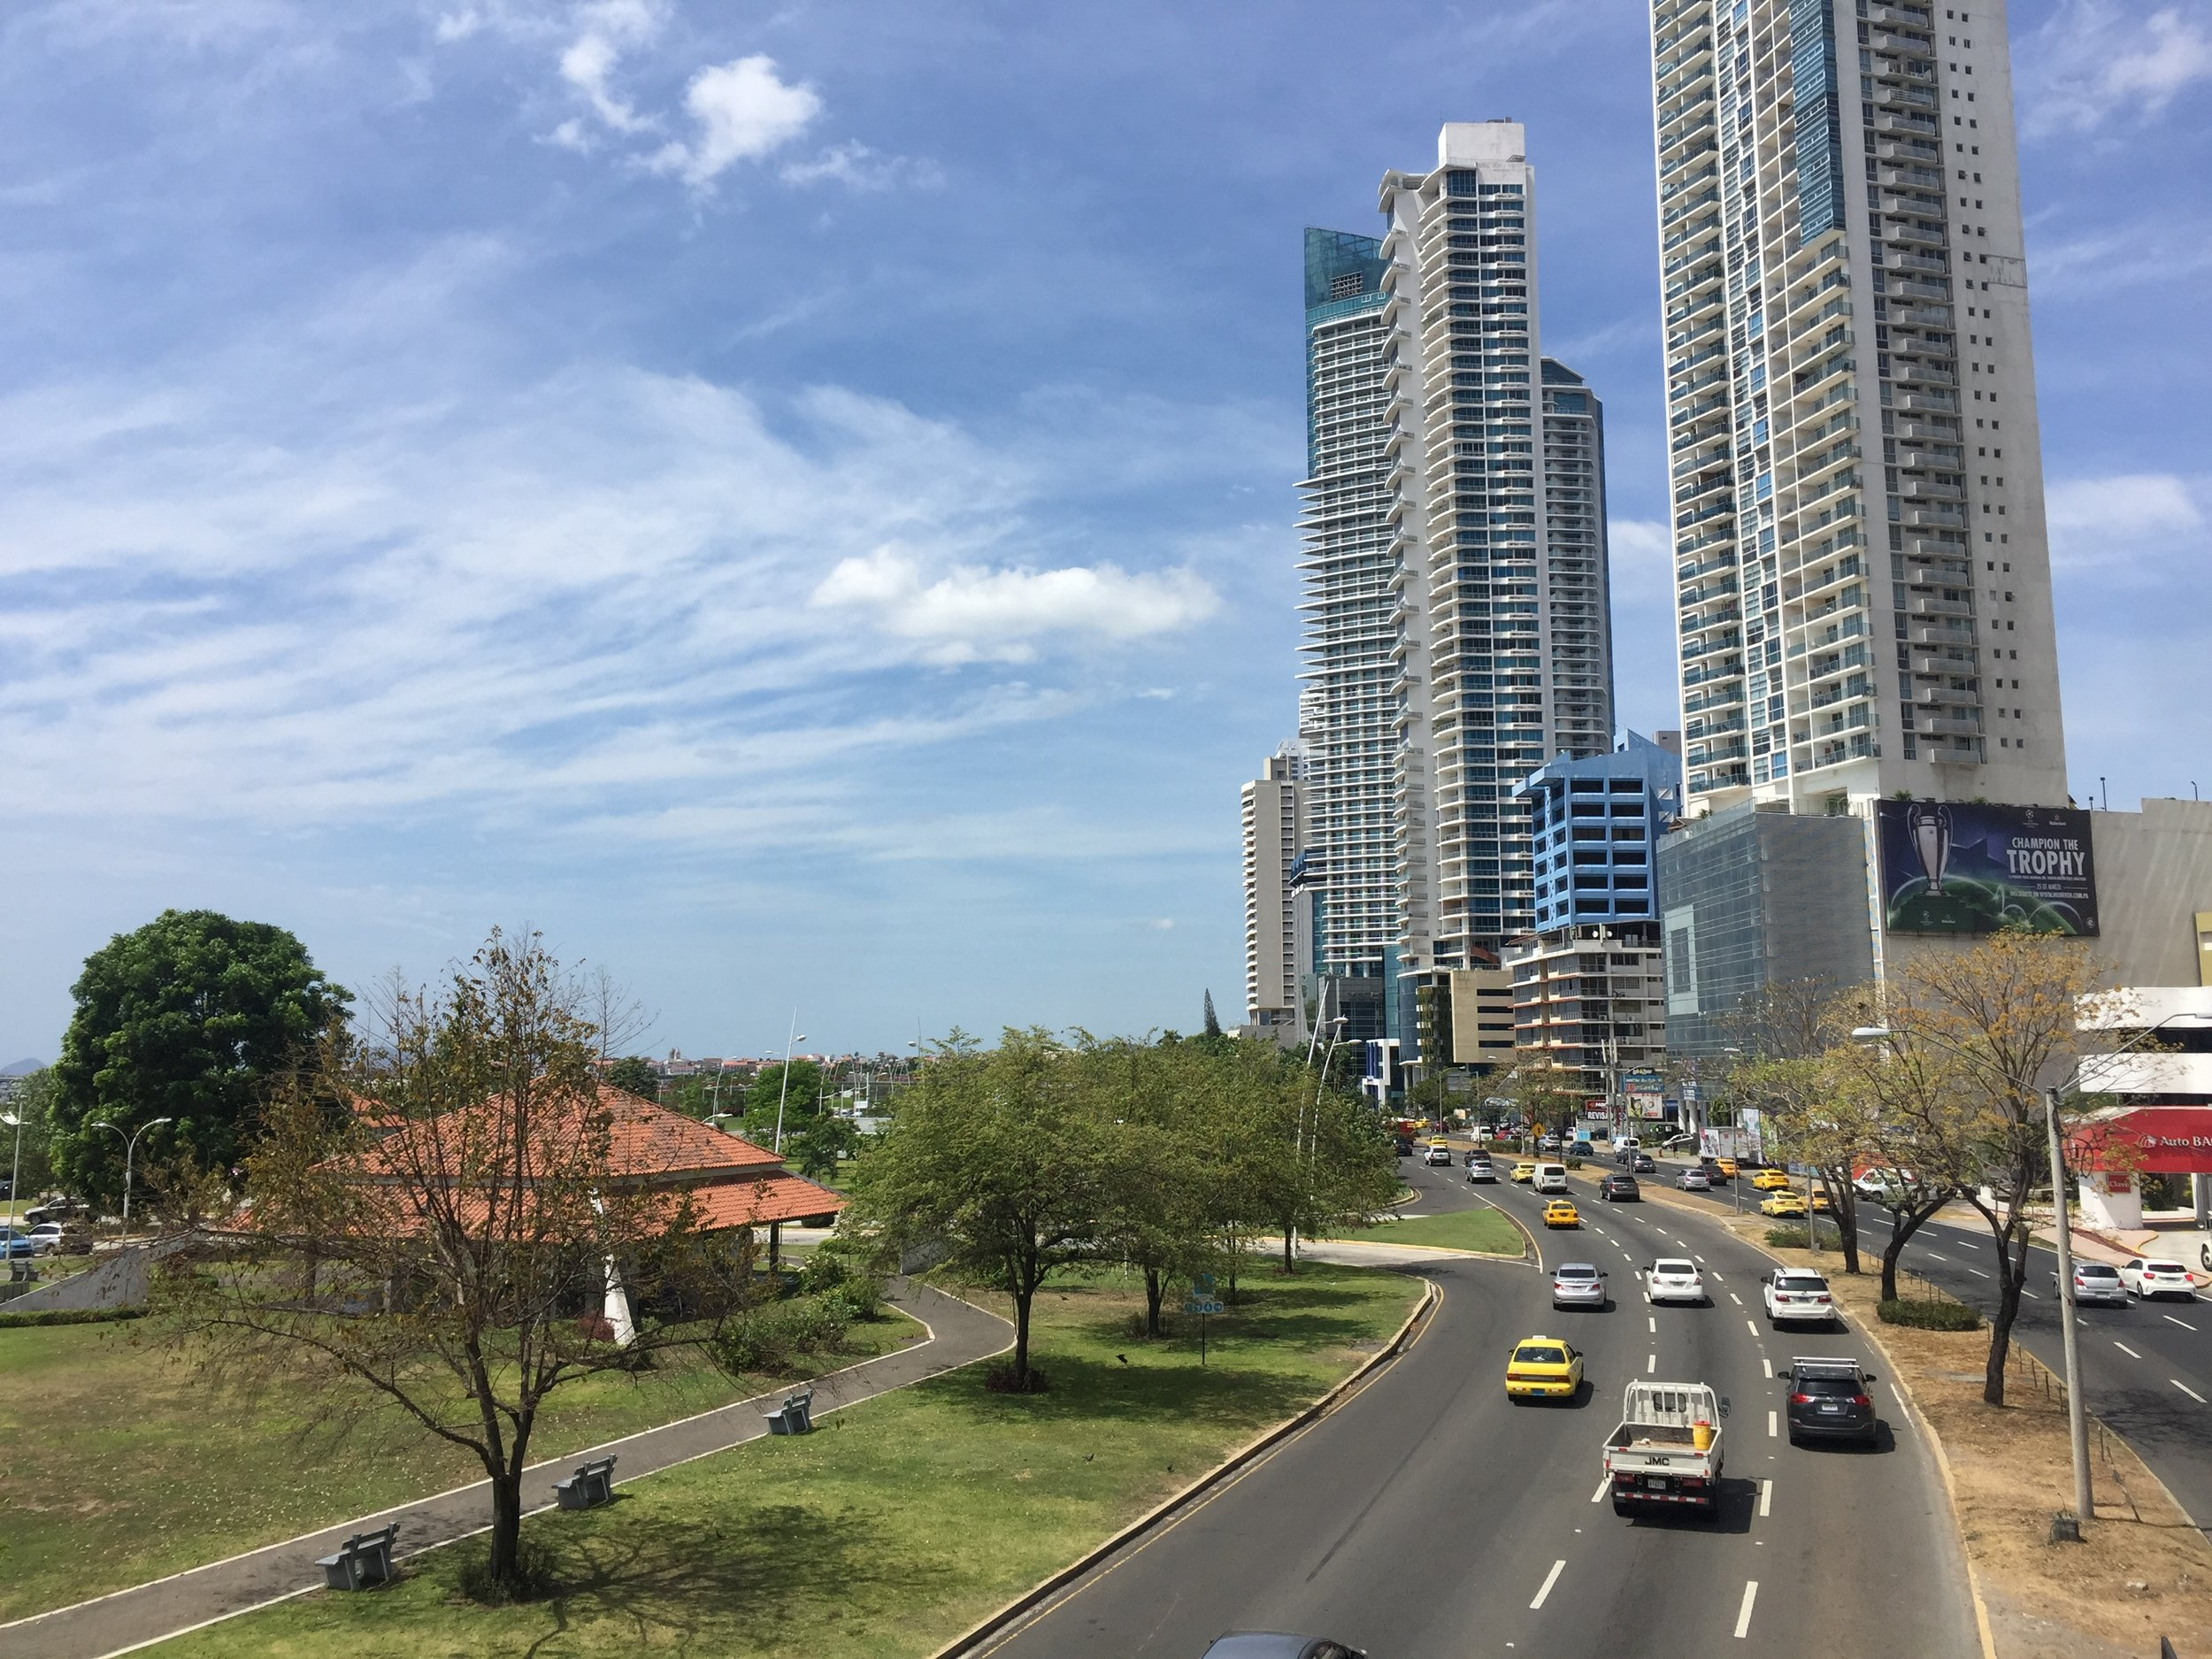 Panama city in Panama, the country. Cool country, cool city…never felt safe here. Hyper-americanized. A day is enough. But you might get stuck here for a while trying to make the required paperwork to get your 4x4 in a container.